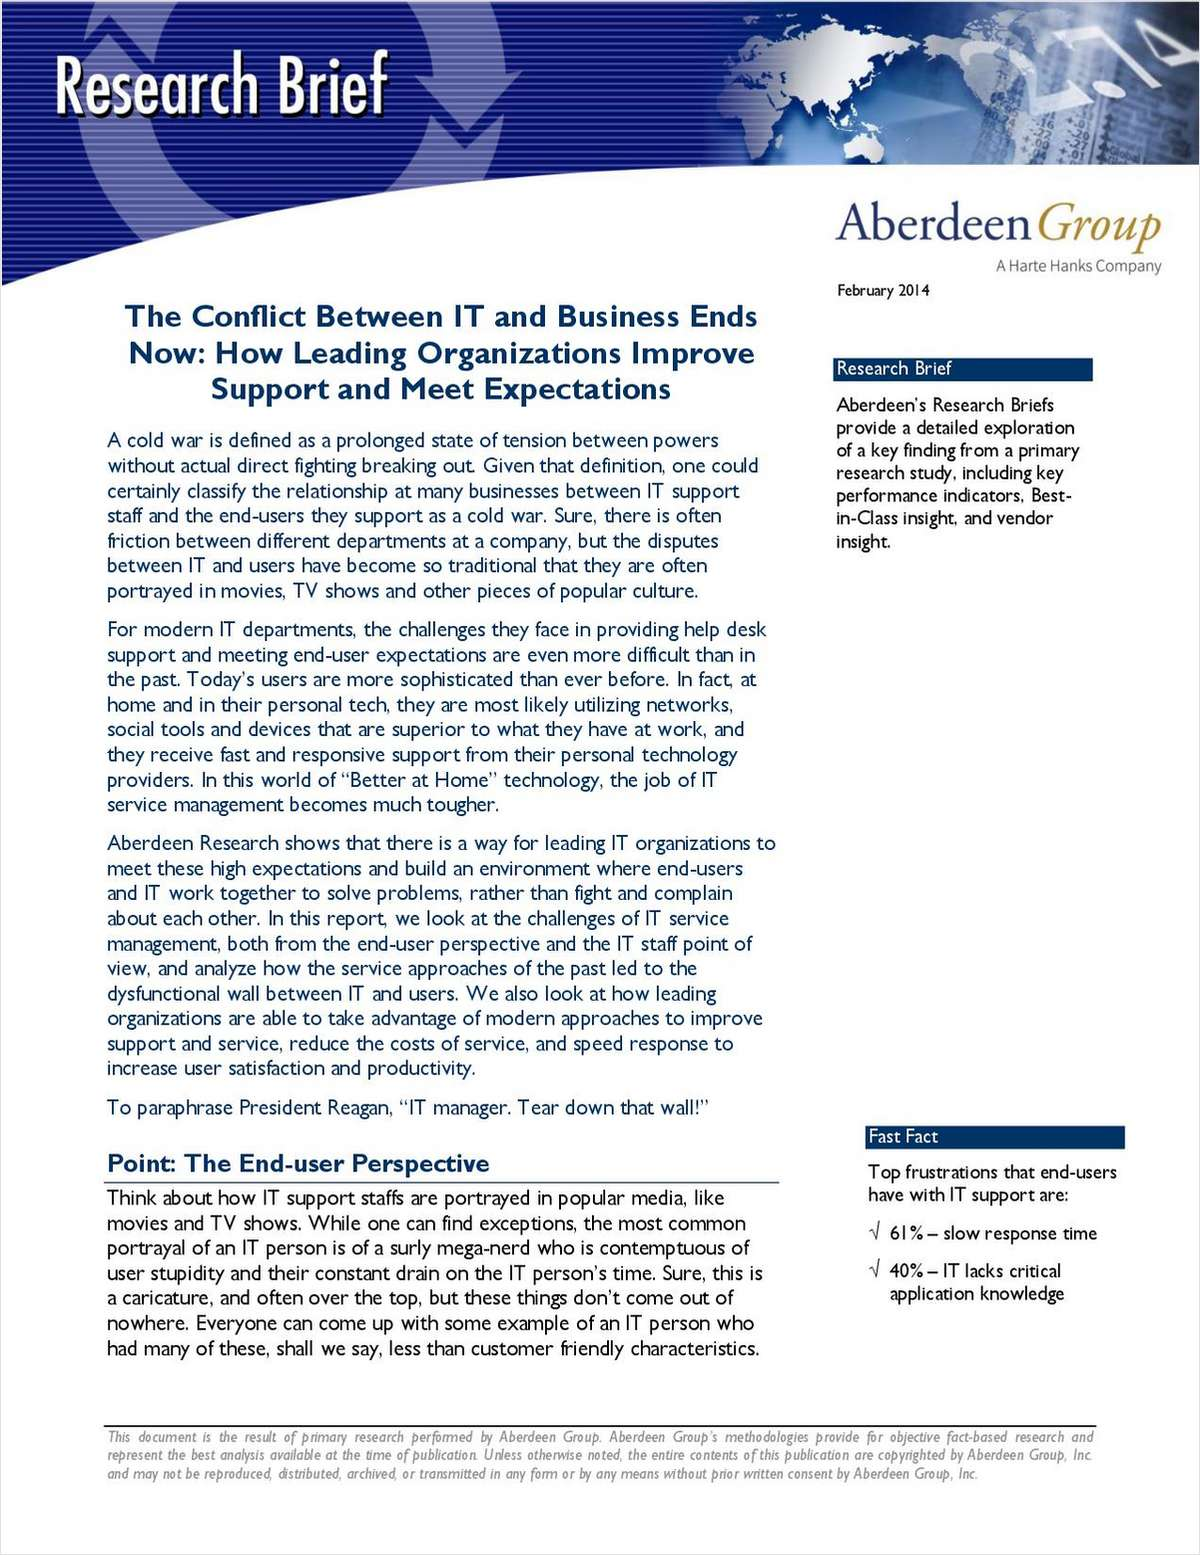 The Conflict Between IT and Business Ends Now: How Leading Organizations Improve Support and Meet Expectations